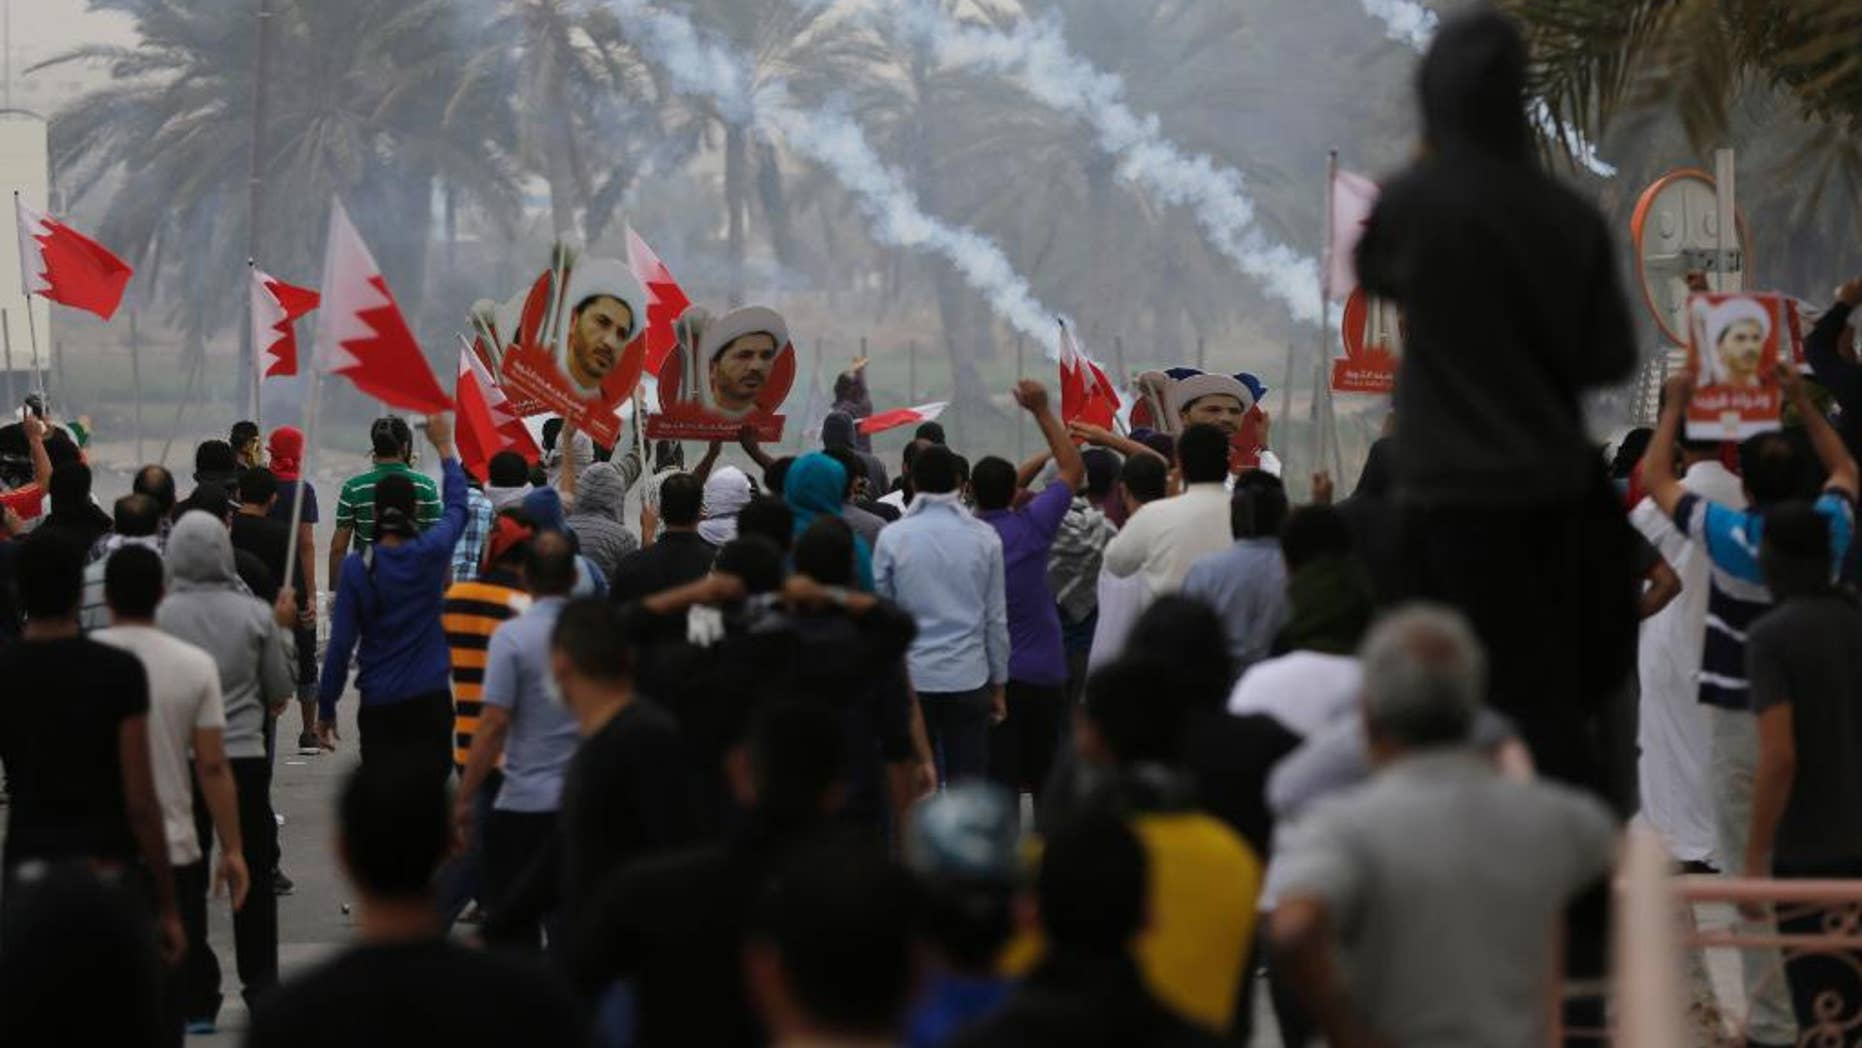 Riot police fire tear gas to disperse Bahraini anti-government protesters waving flags and carrying pictures of jailed Shiite cleric Sheikh Ali Salman, head of the largest opposition political society, Friday, Feb. 13, 2015, in the Manama suburb of Bilad al-Qadeem, Bahrain. Protest marches were held and clashes erupted in opposition areas nationwide Friday, where many shops stayed closed as part of a three-day general strike called by the February 14 opposition youth group before Saturday's fourth anniversary of Bahrain's pro-democracy uprising. (AP Photo/Hasan Jamali)